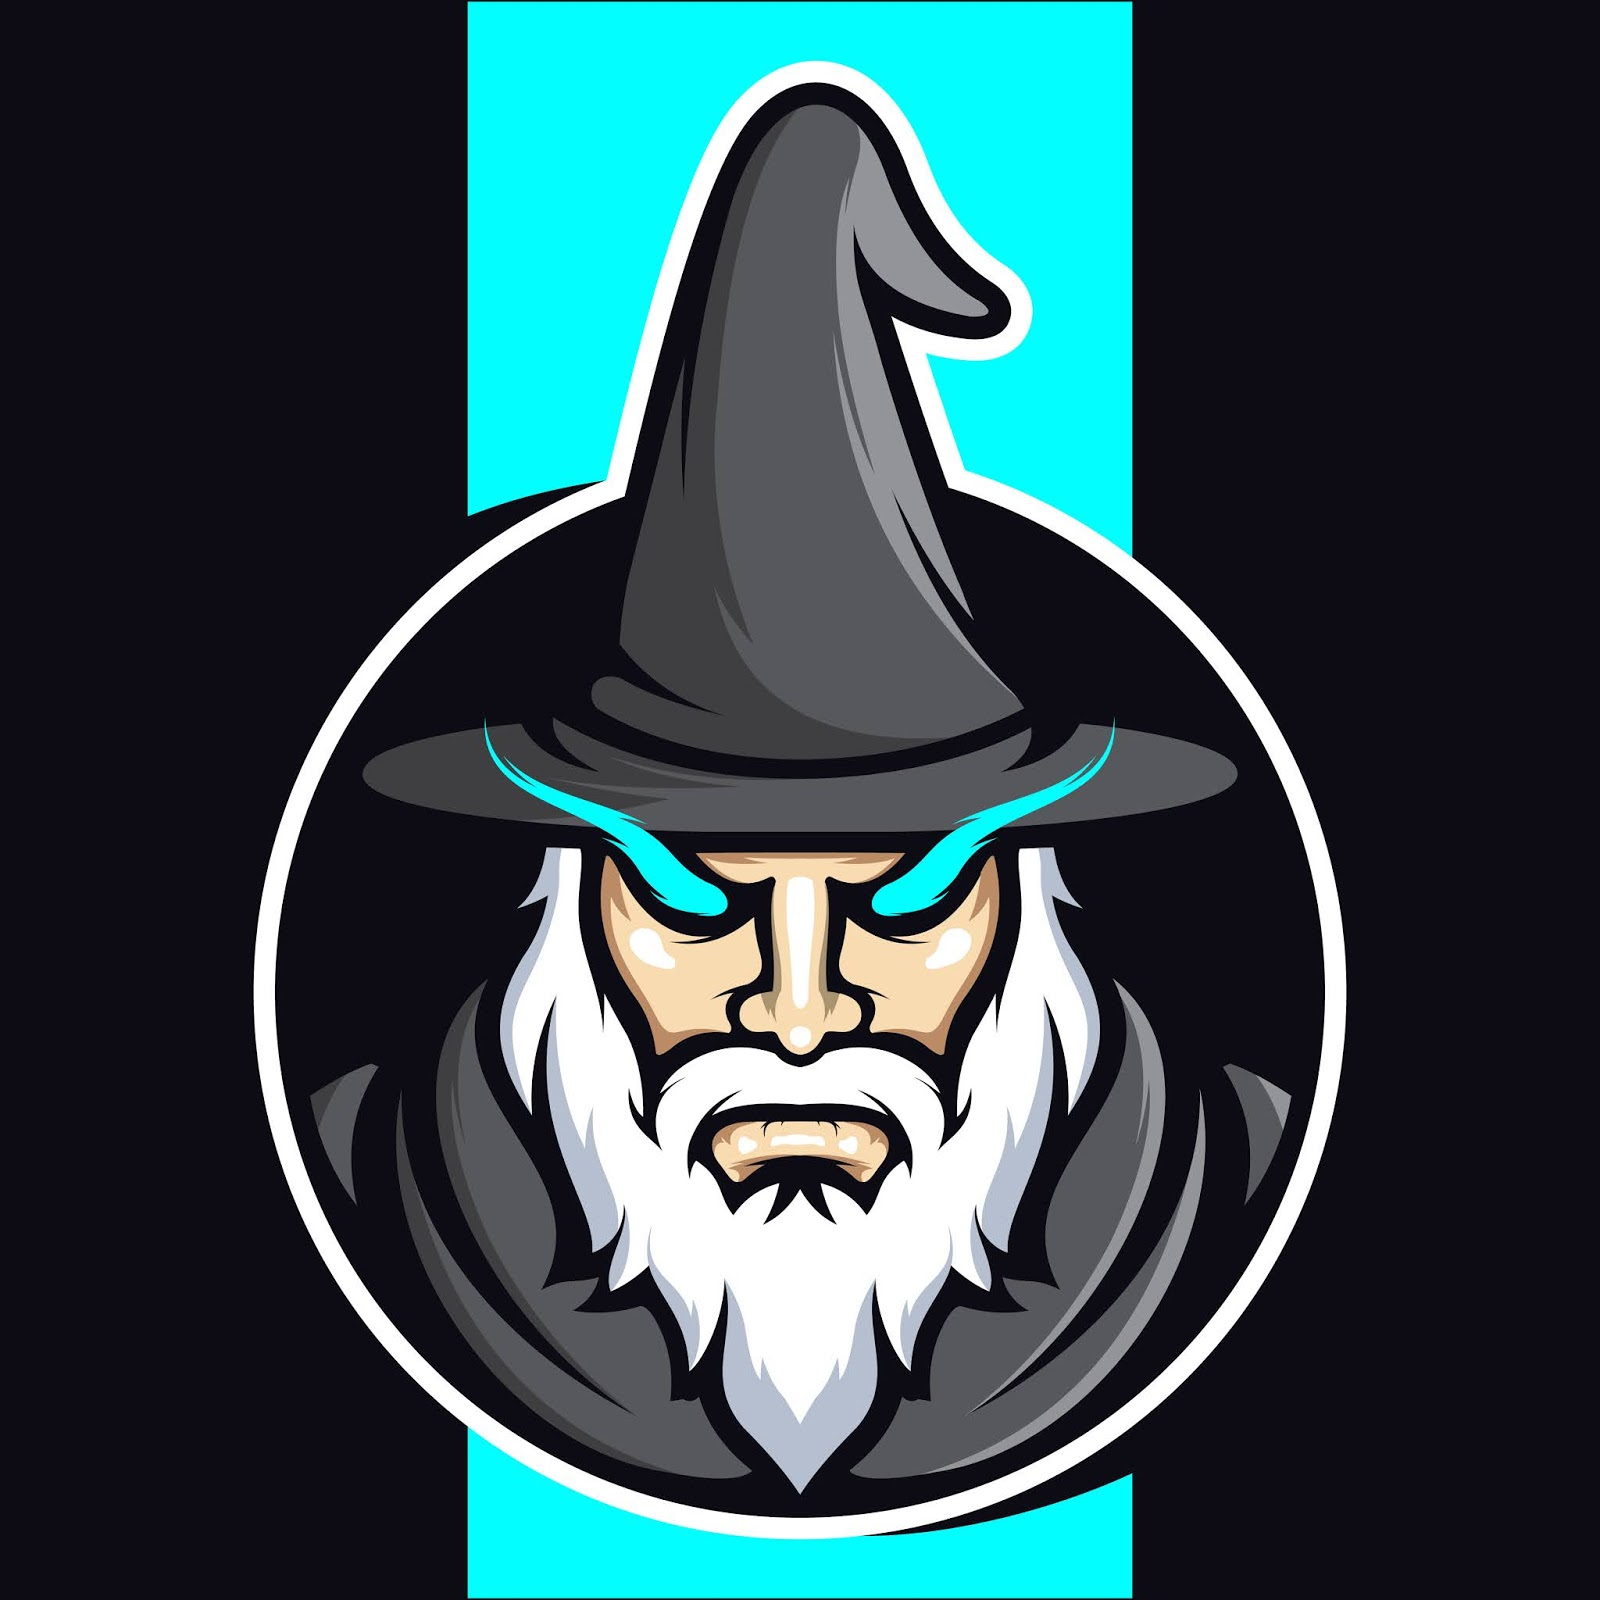 Wizard Esports Logo Design Free Download Vector CDR, AI, EPS and PNG Formats